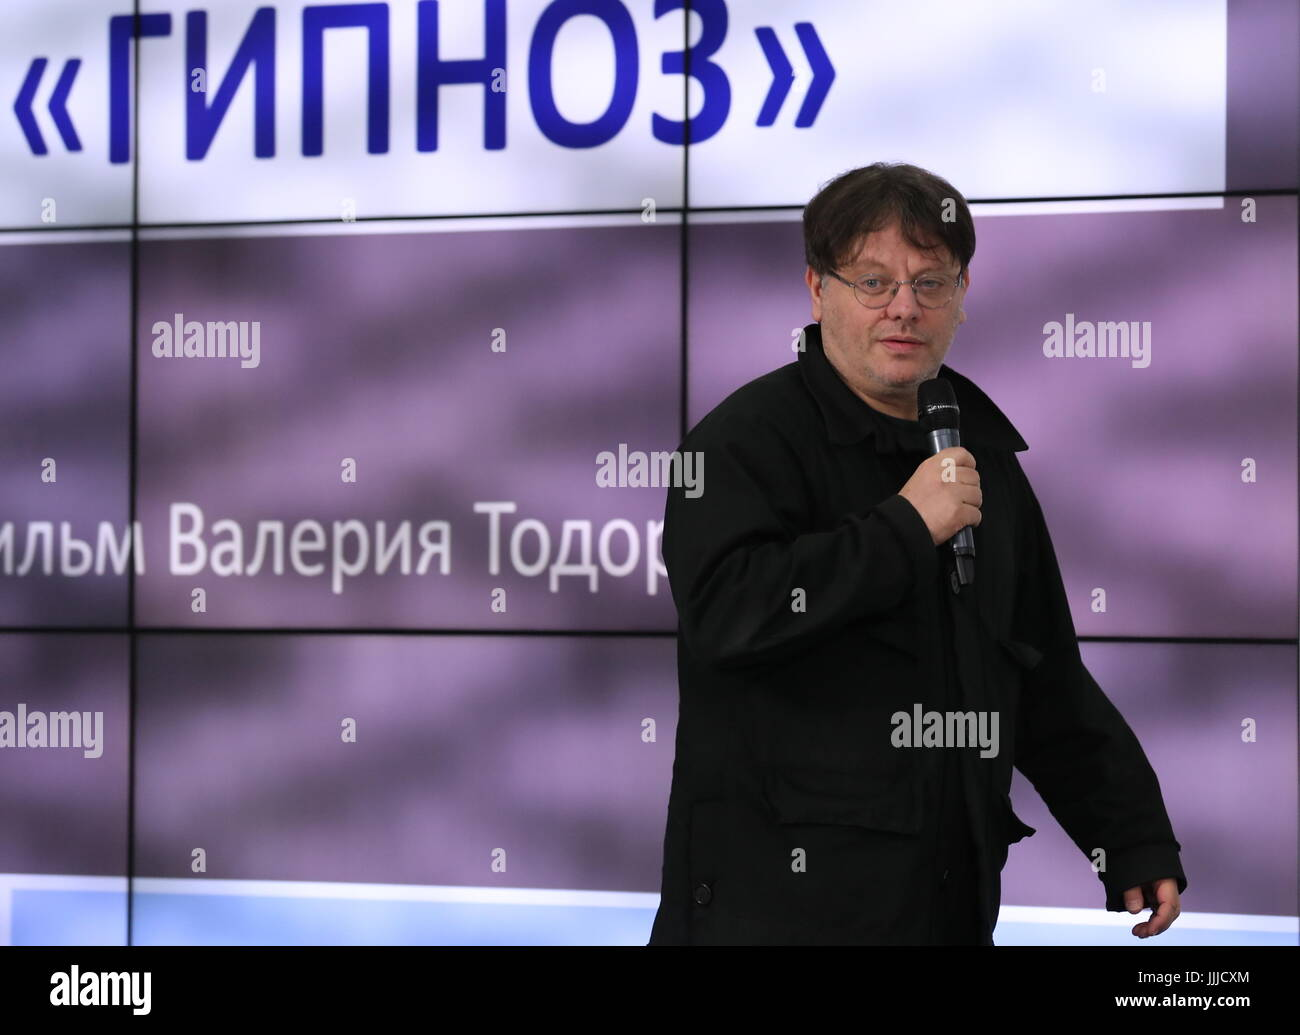 Moscow, Russia. 20th July, 2017. Russian film director and producer Valery Todorovsky speaks during a presentational - Stock Image